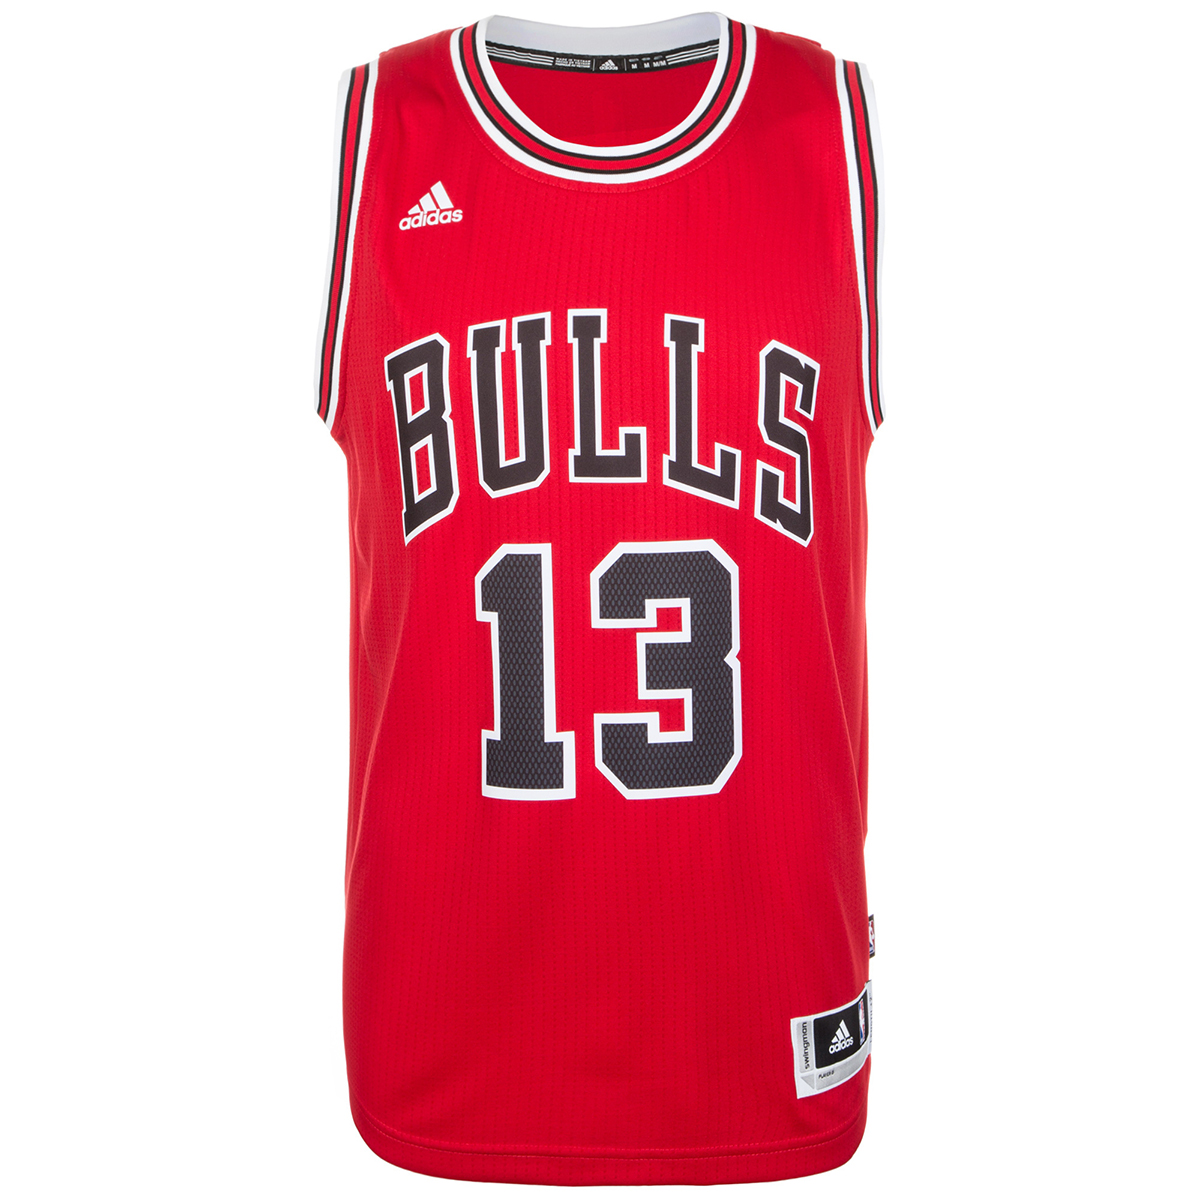 The official site of the Chicago Bulls. Includes news, scores, schedules, statistics, photos and video.